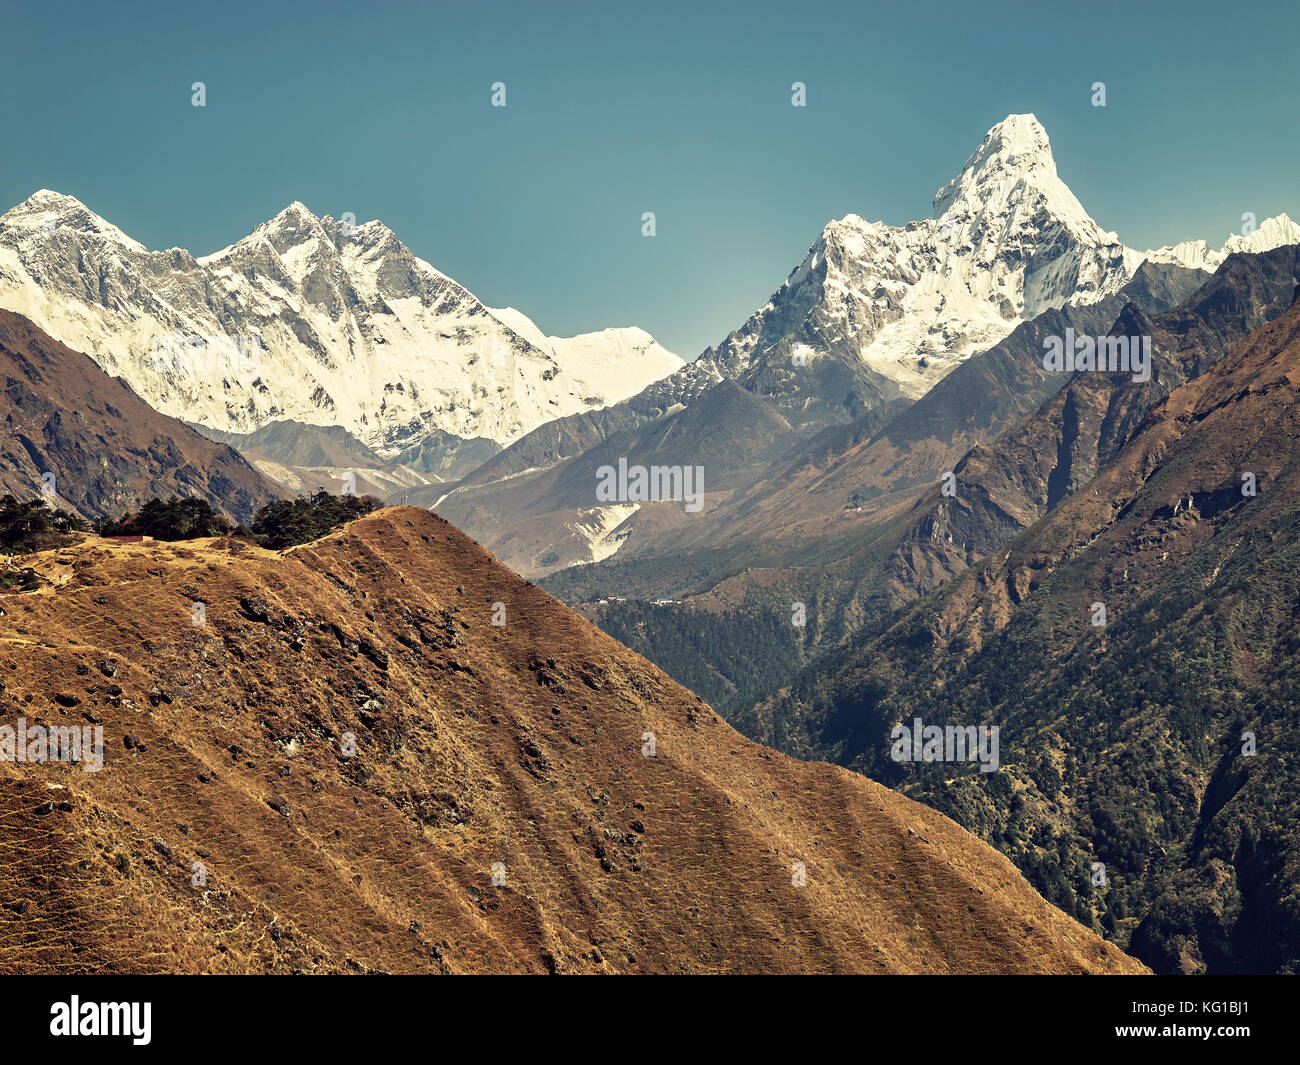 Retro stylized picture of Ama Dablam Mountain in the Everest Region of the Himalayas, Nepal. - Stock Image